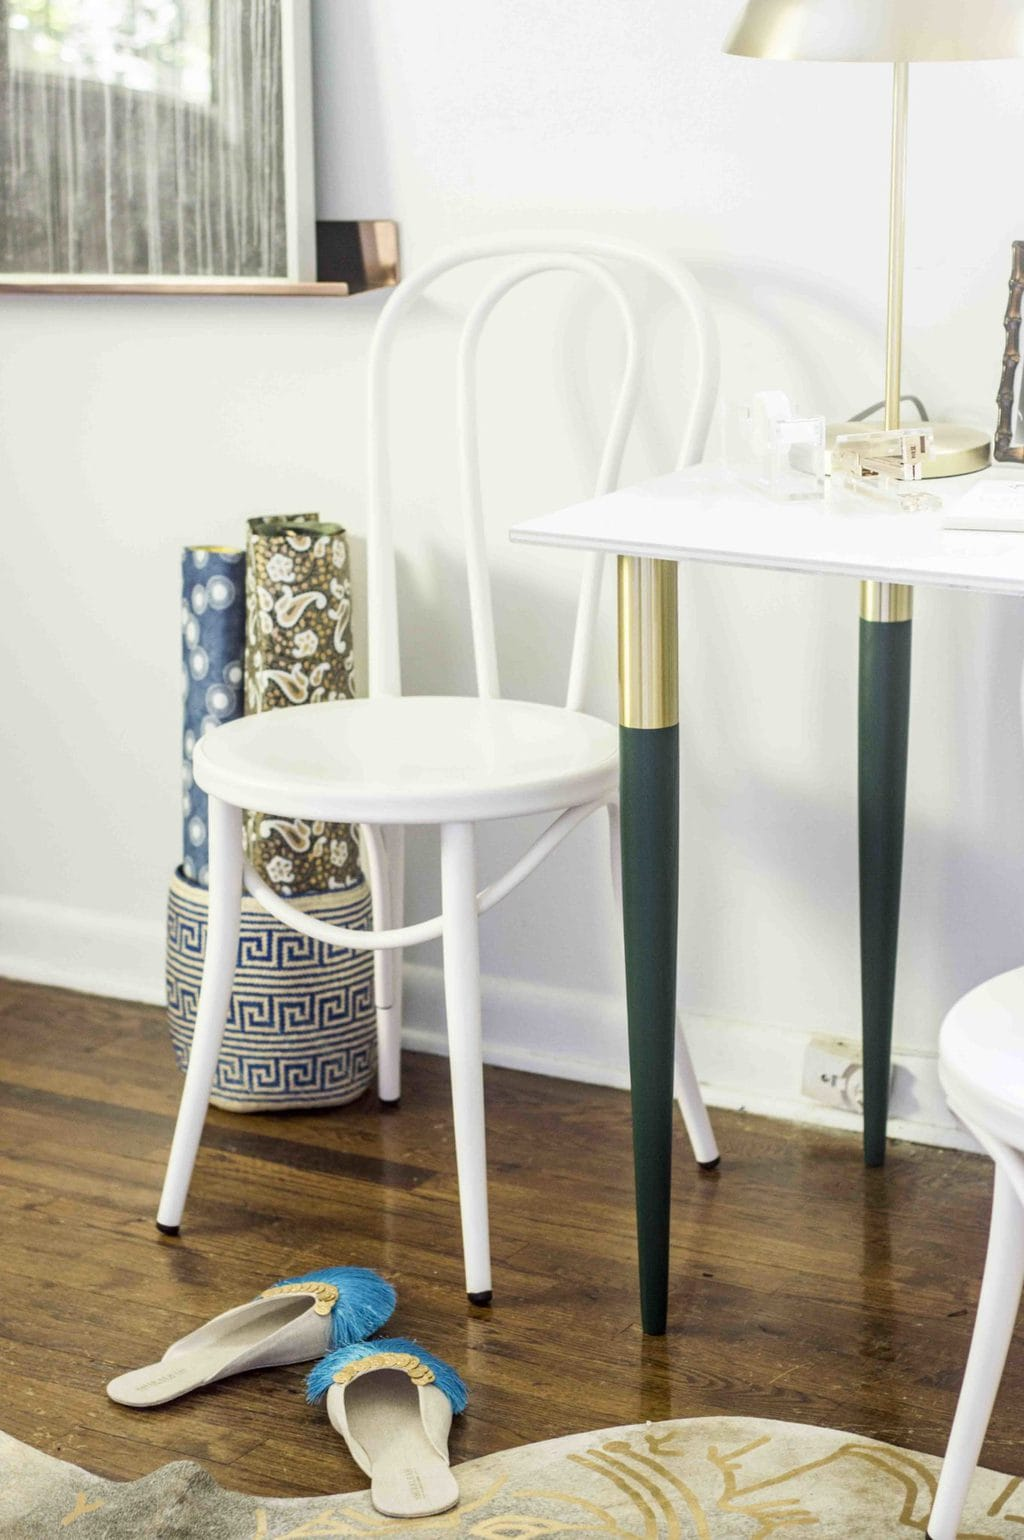 Blue and green bedroom makeover, white bistro chair and green and gold table legs on Thou Swell @thouswellblog